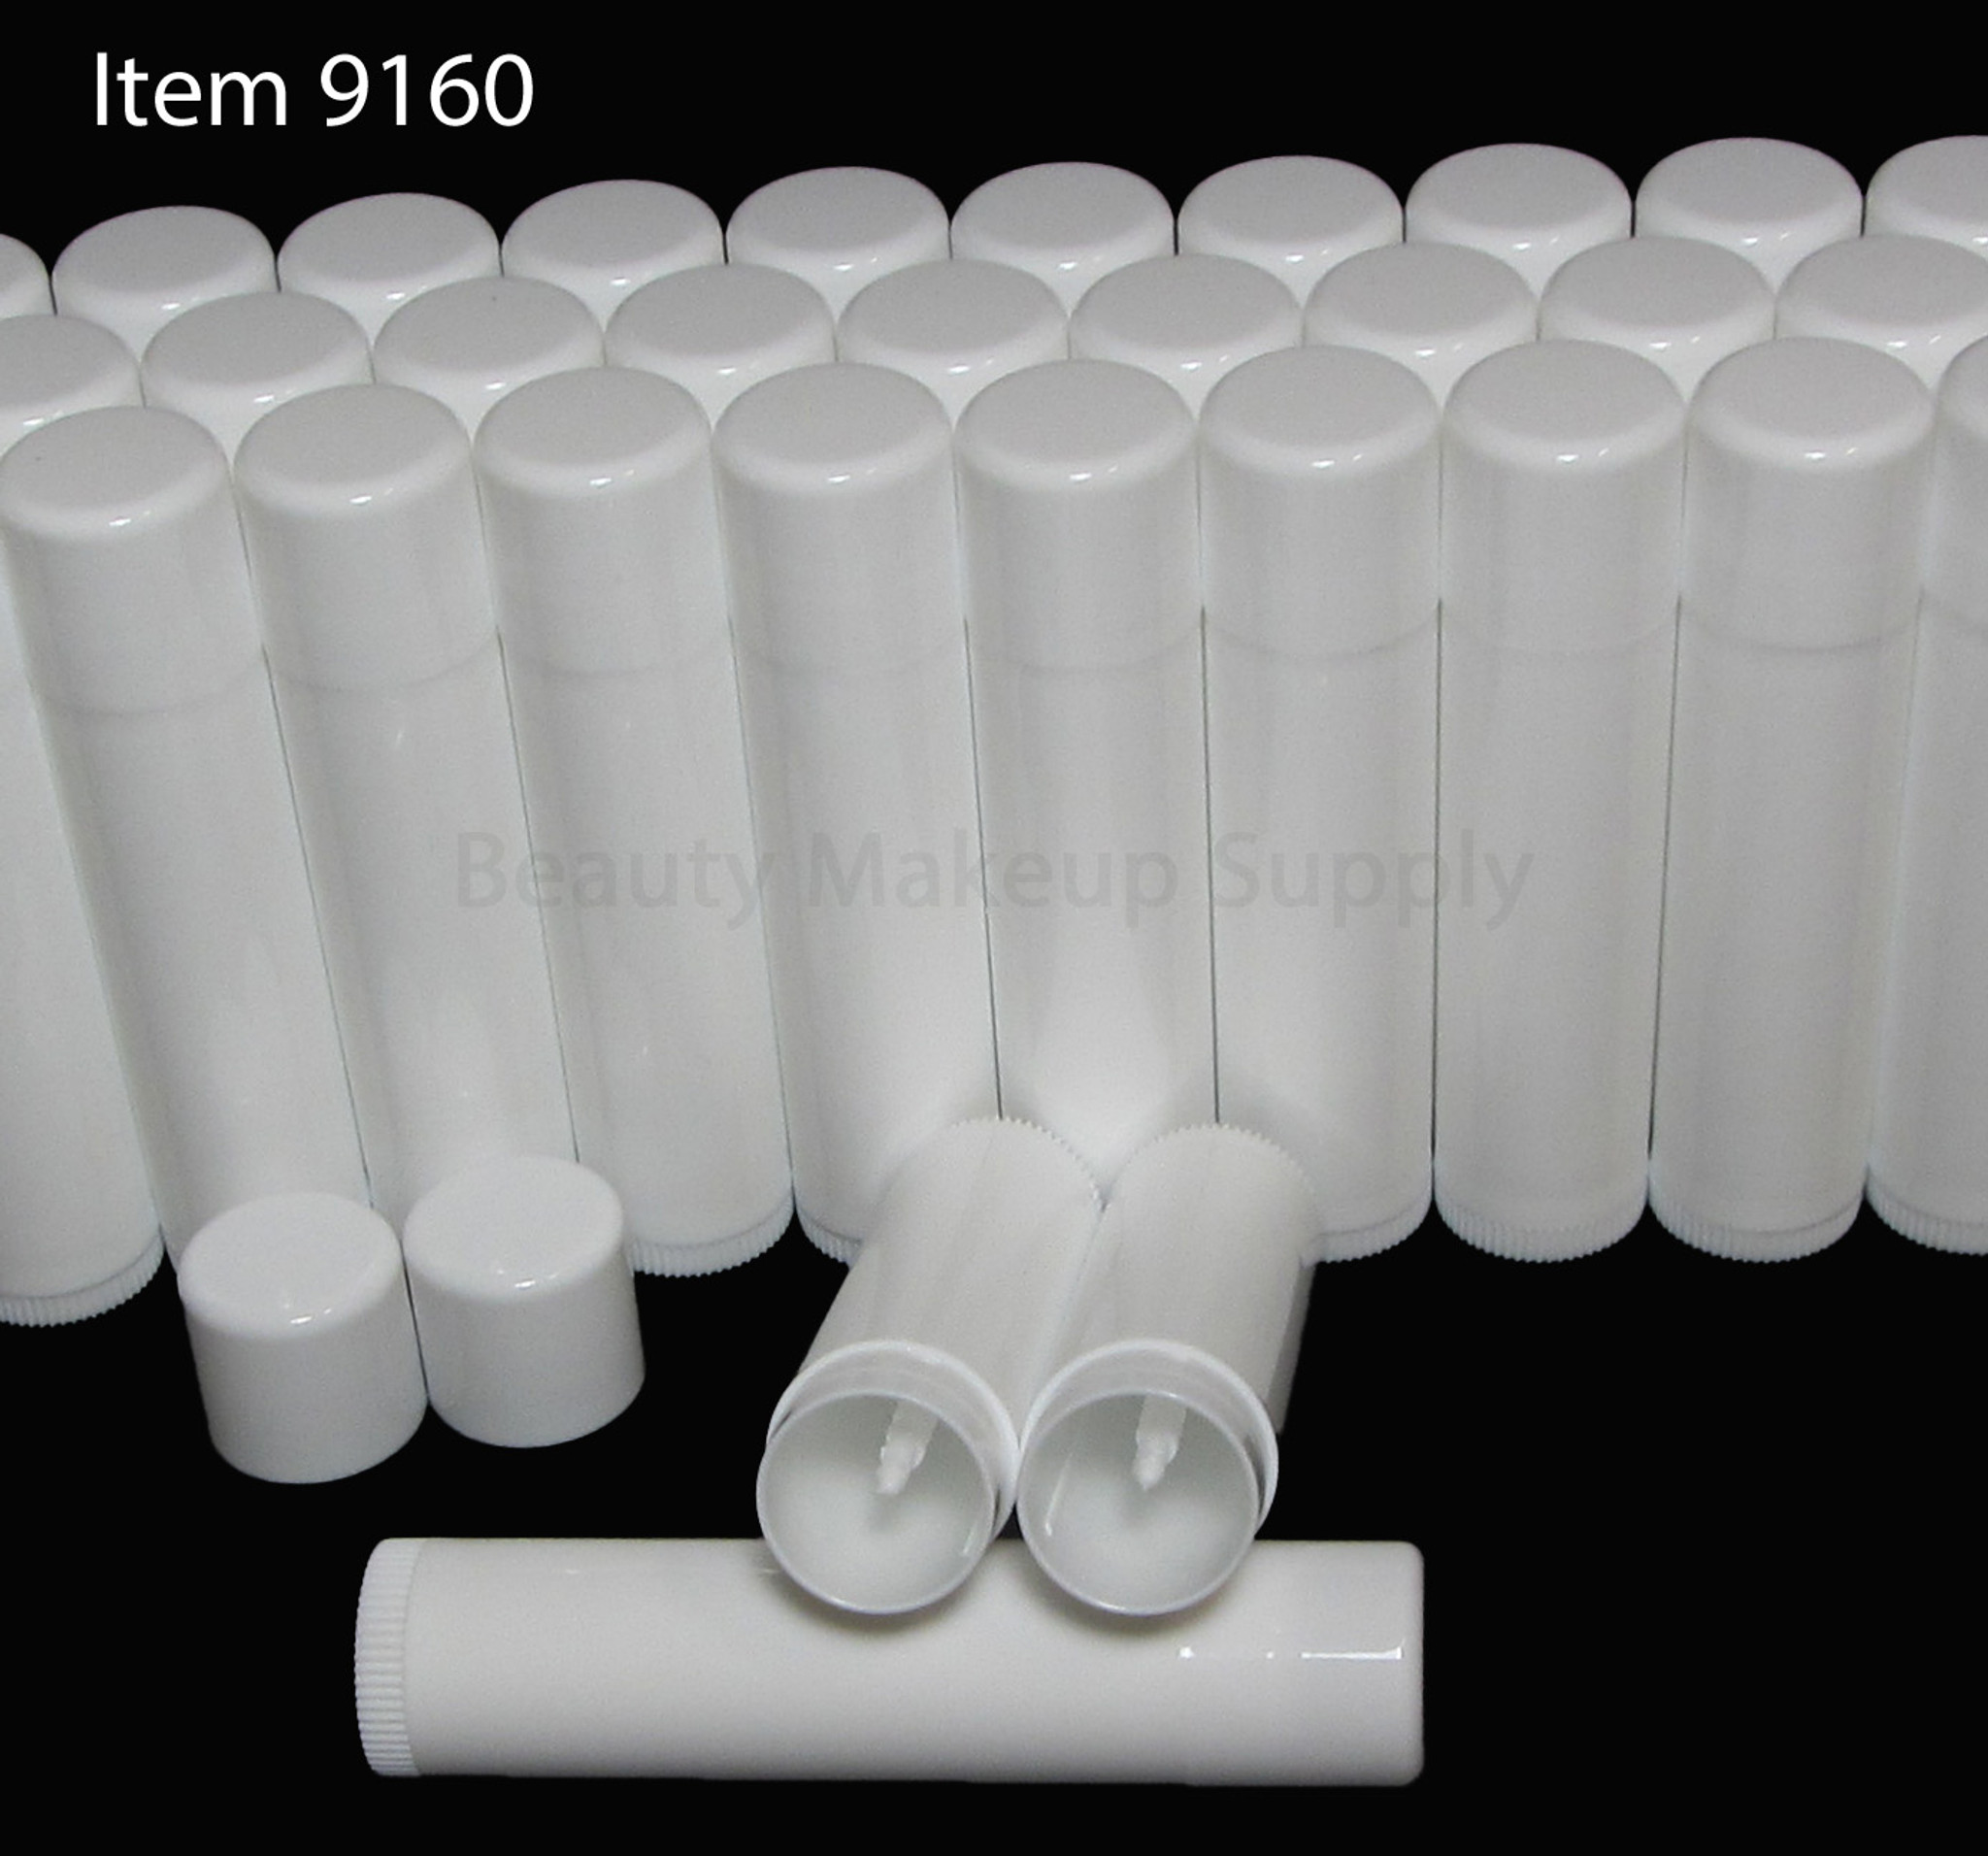 White Rounded Edge Lip Balm Tubes - New Product at Beauty Makeup Supply